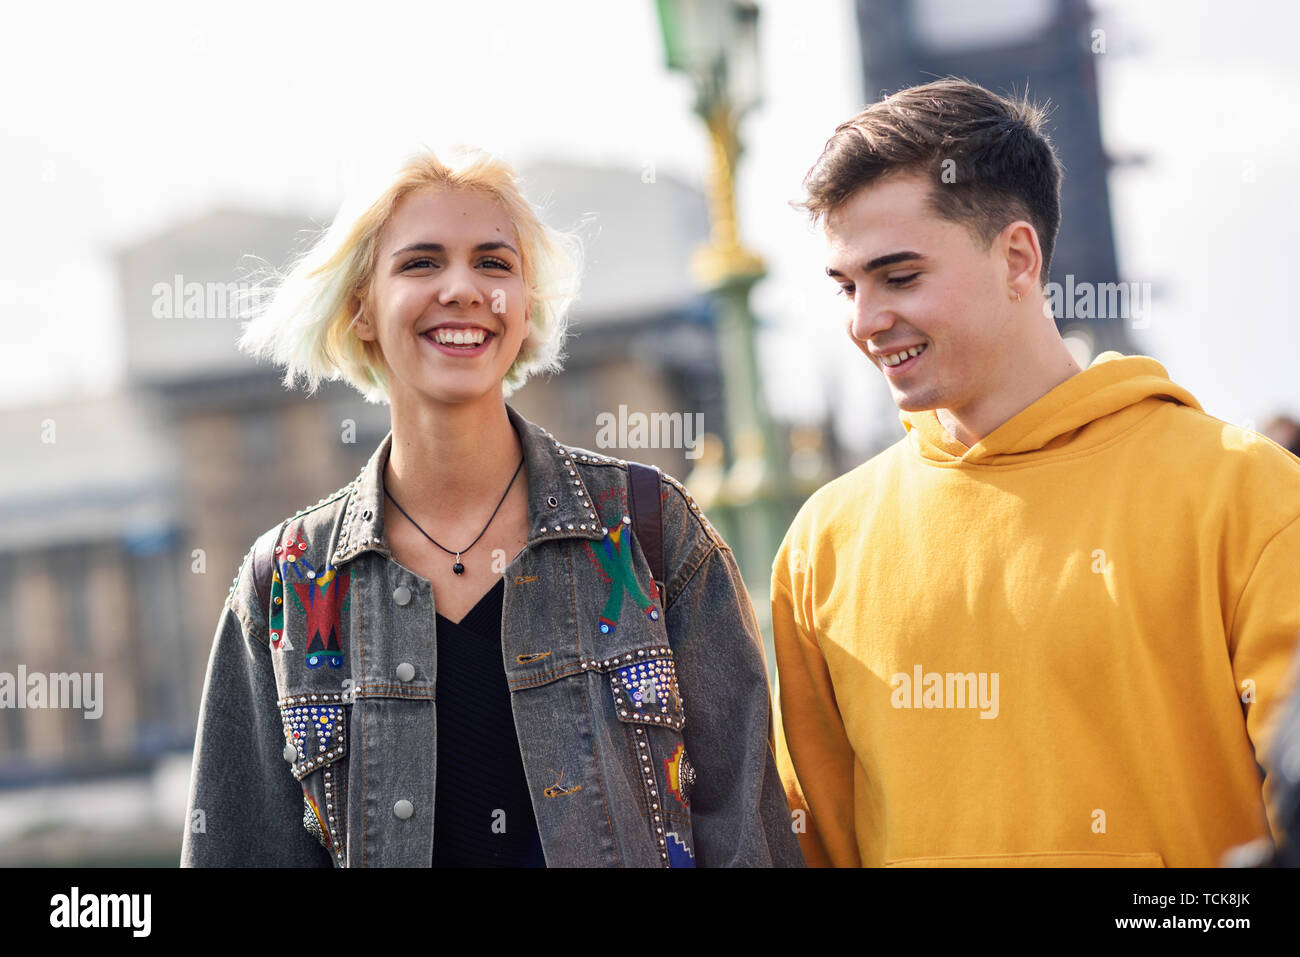 Happy couple by westminster bridge, River Thames, London. UK. - Stock Image